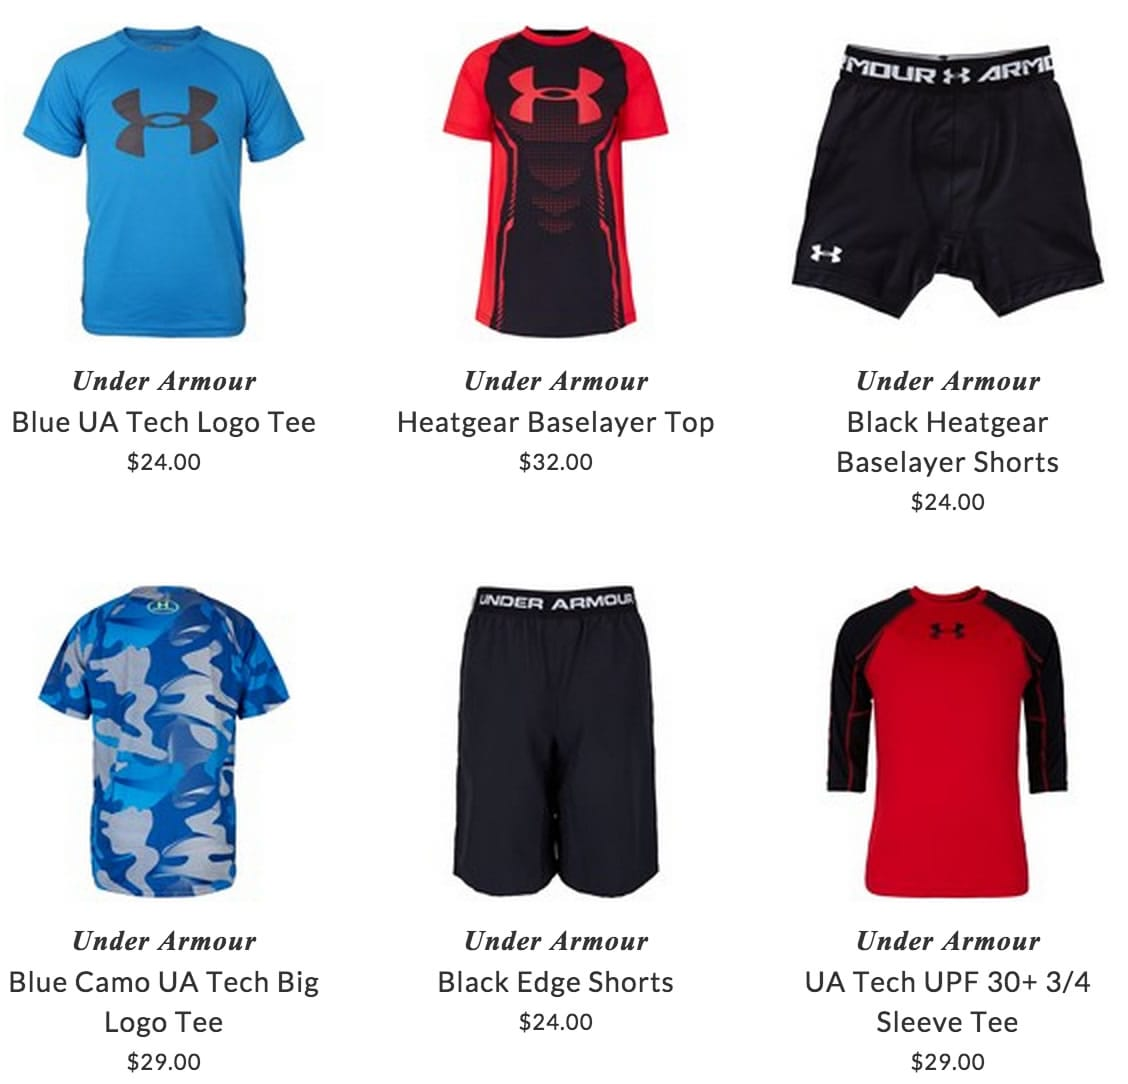 where to buy under armor clothing